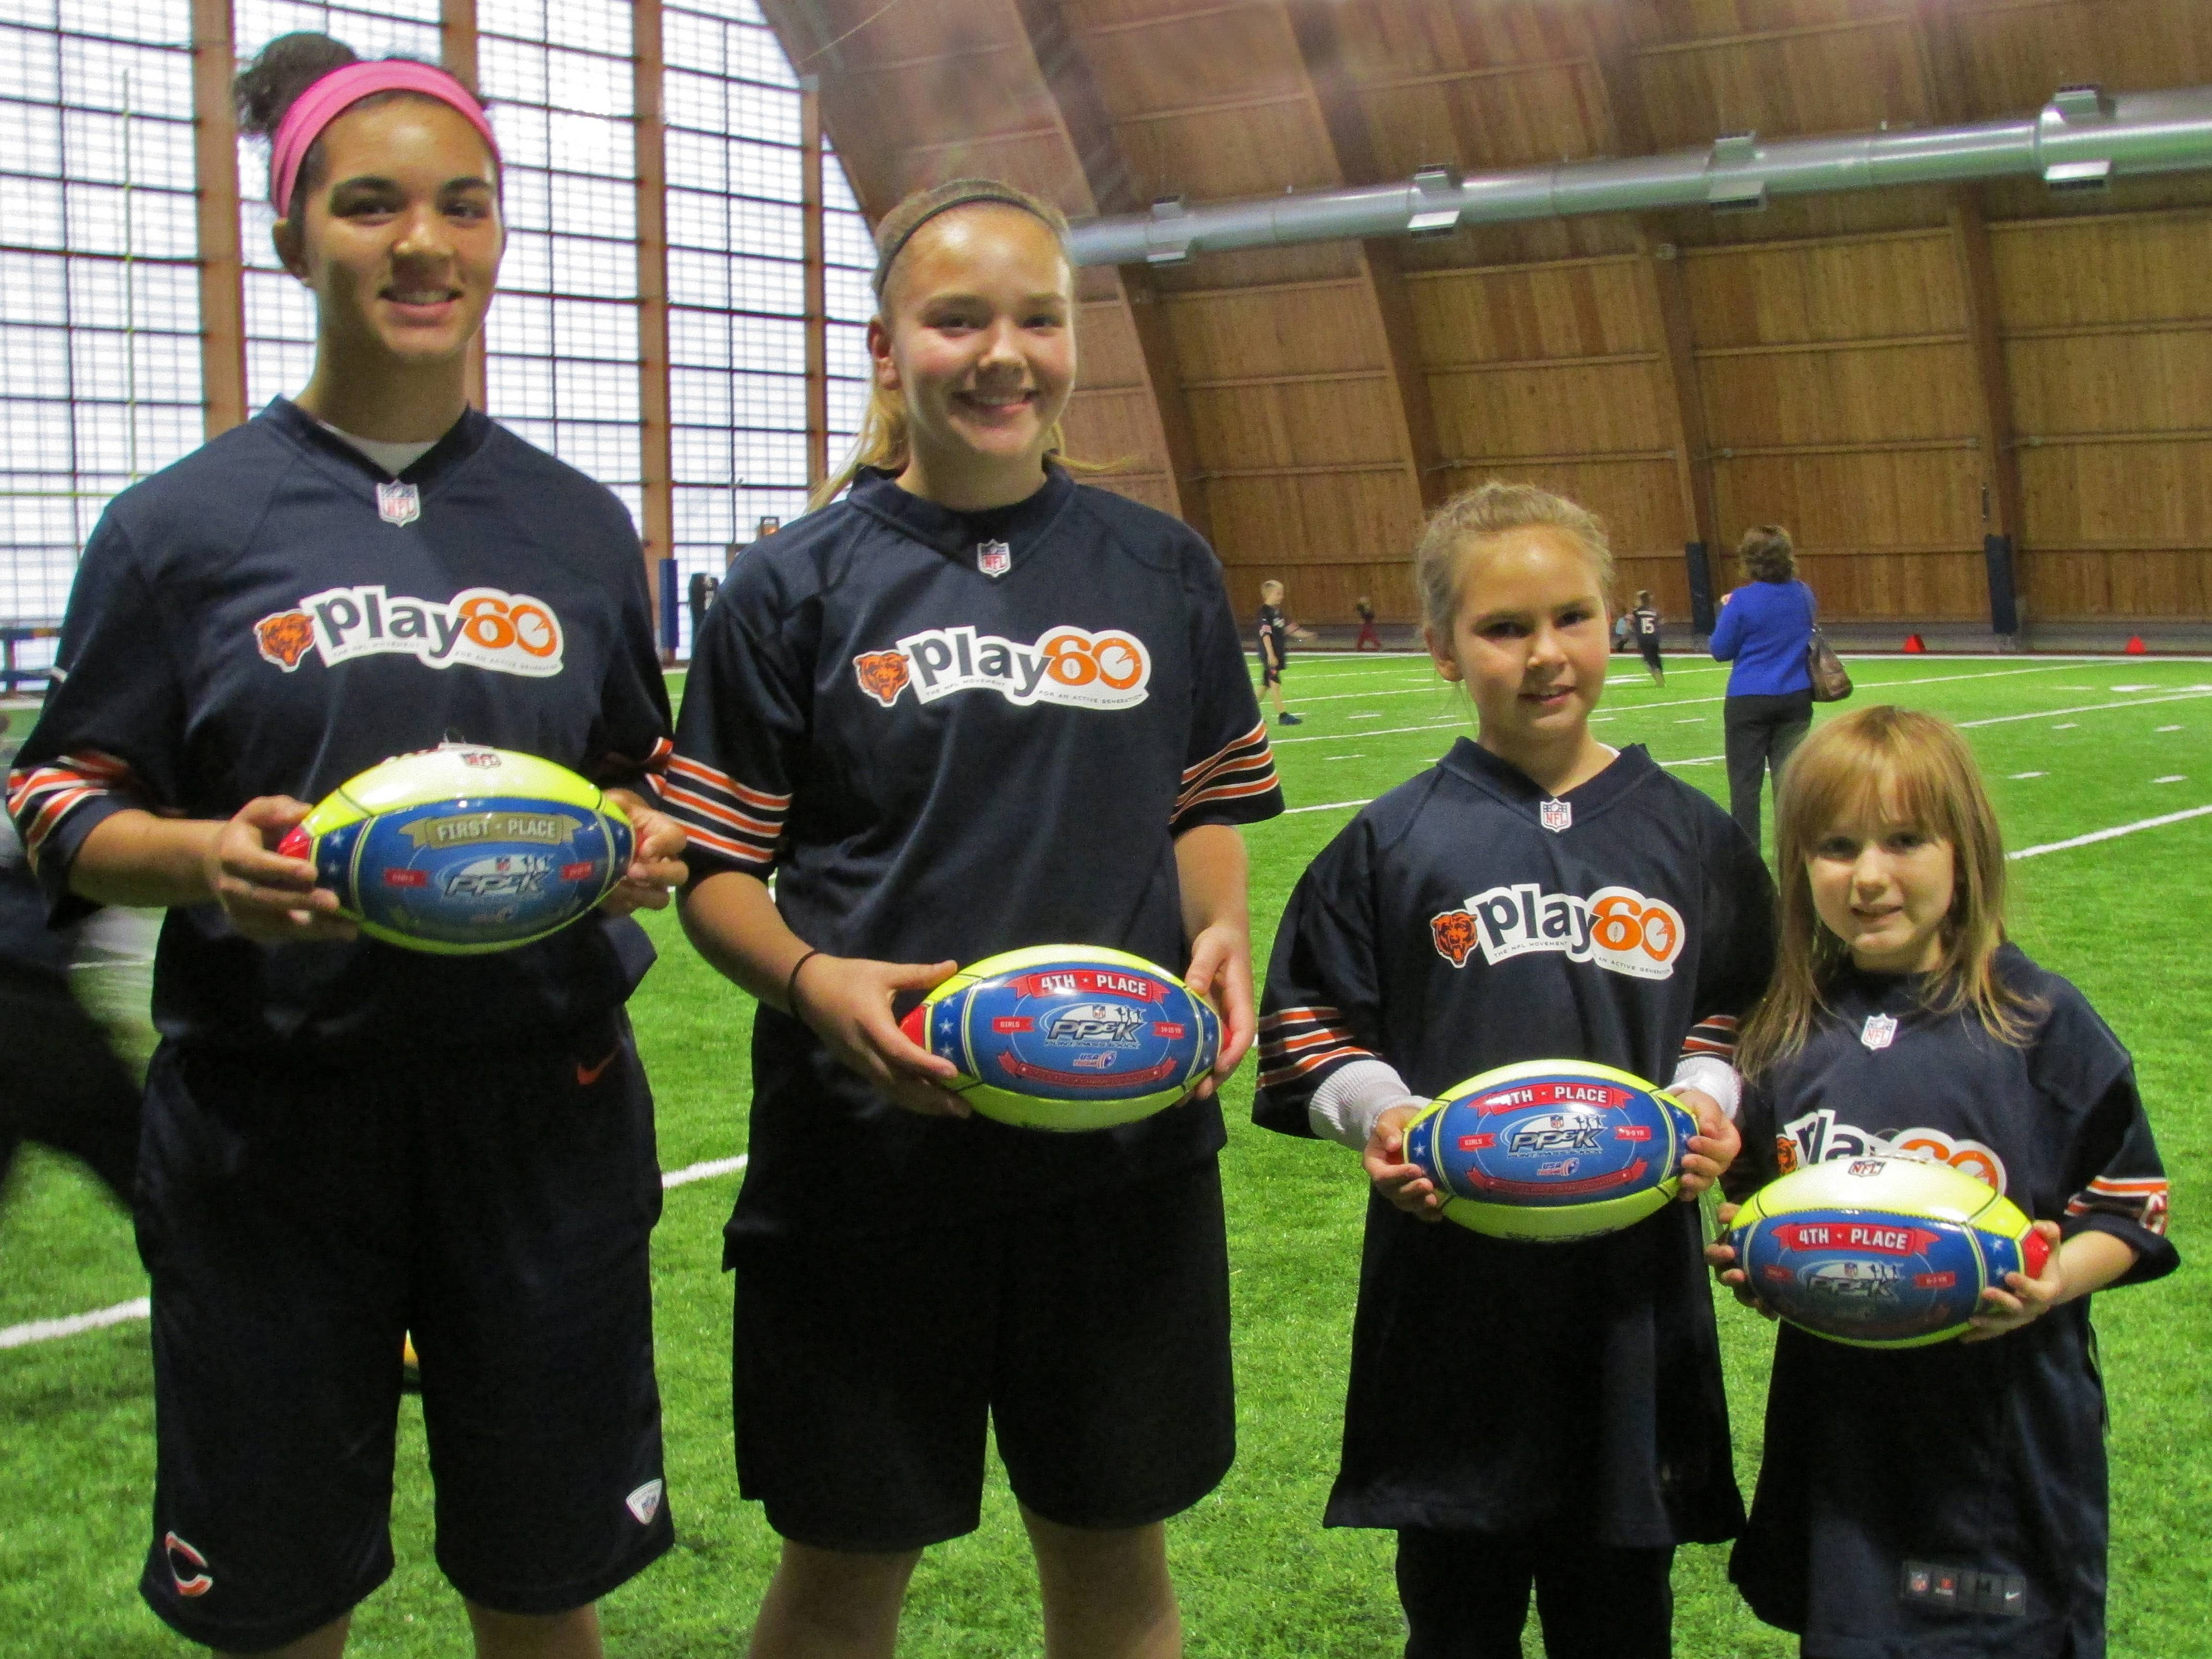 Alisa Fallon, Allison Pearson, Gillian Herman, and Katelyn Dahl hold their prize-winning balls at the Punt, Pass & Kick Team Championships on November 16 at the Walter Payton Center in Lake Forest